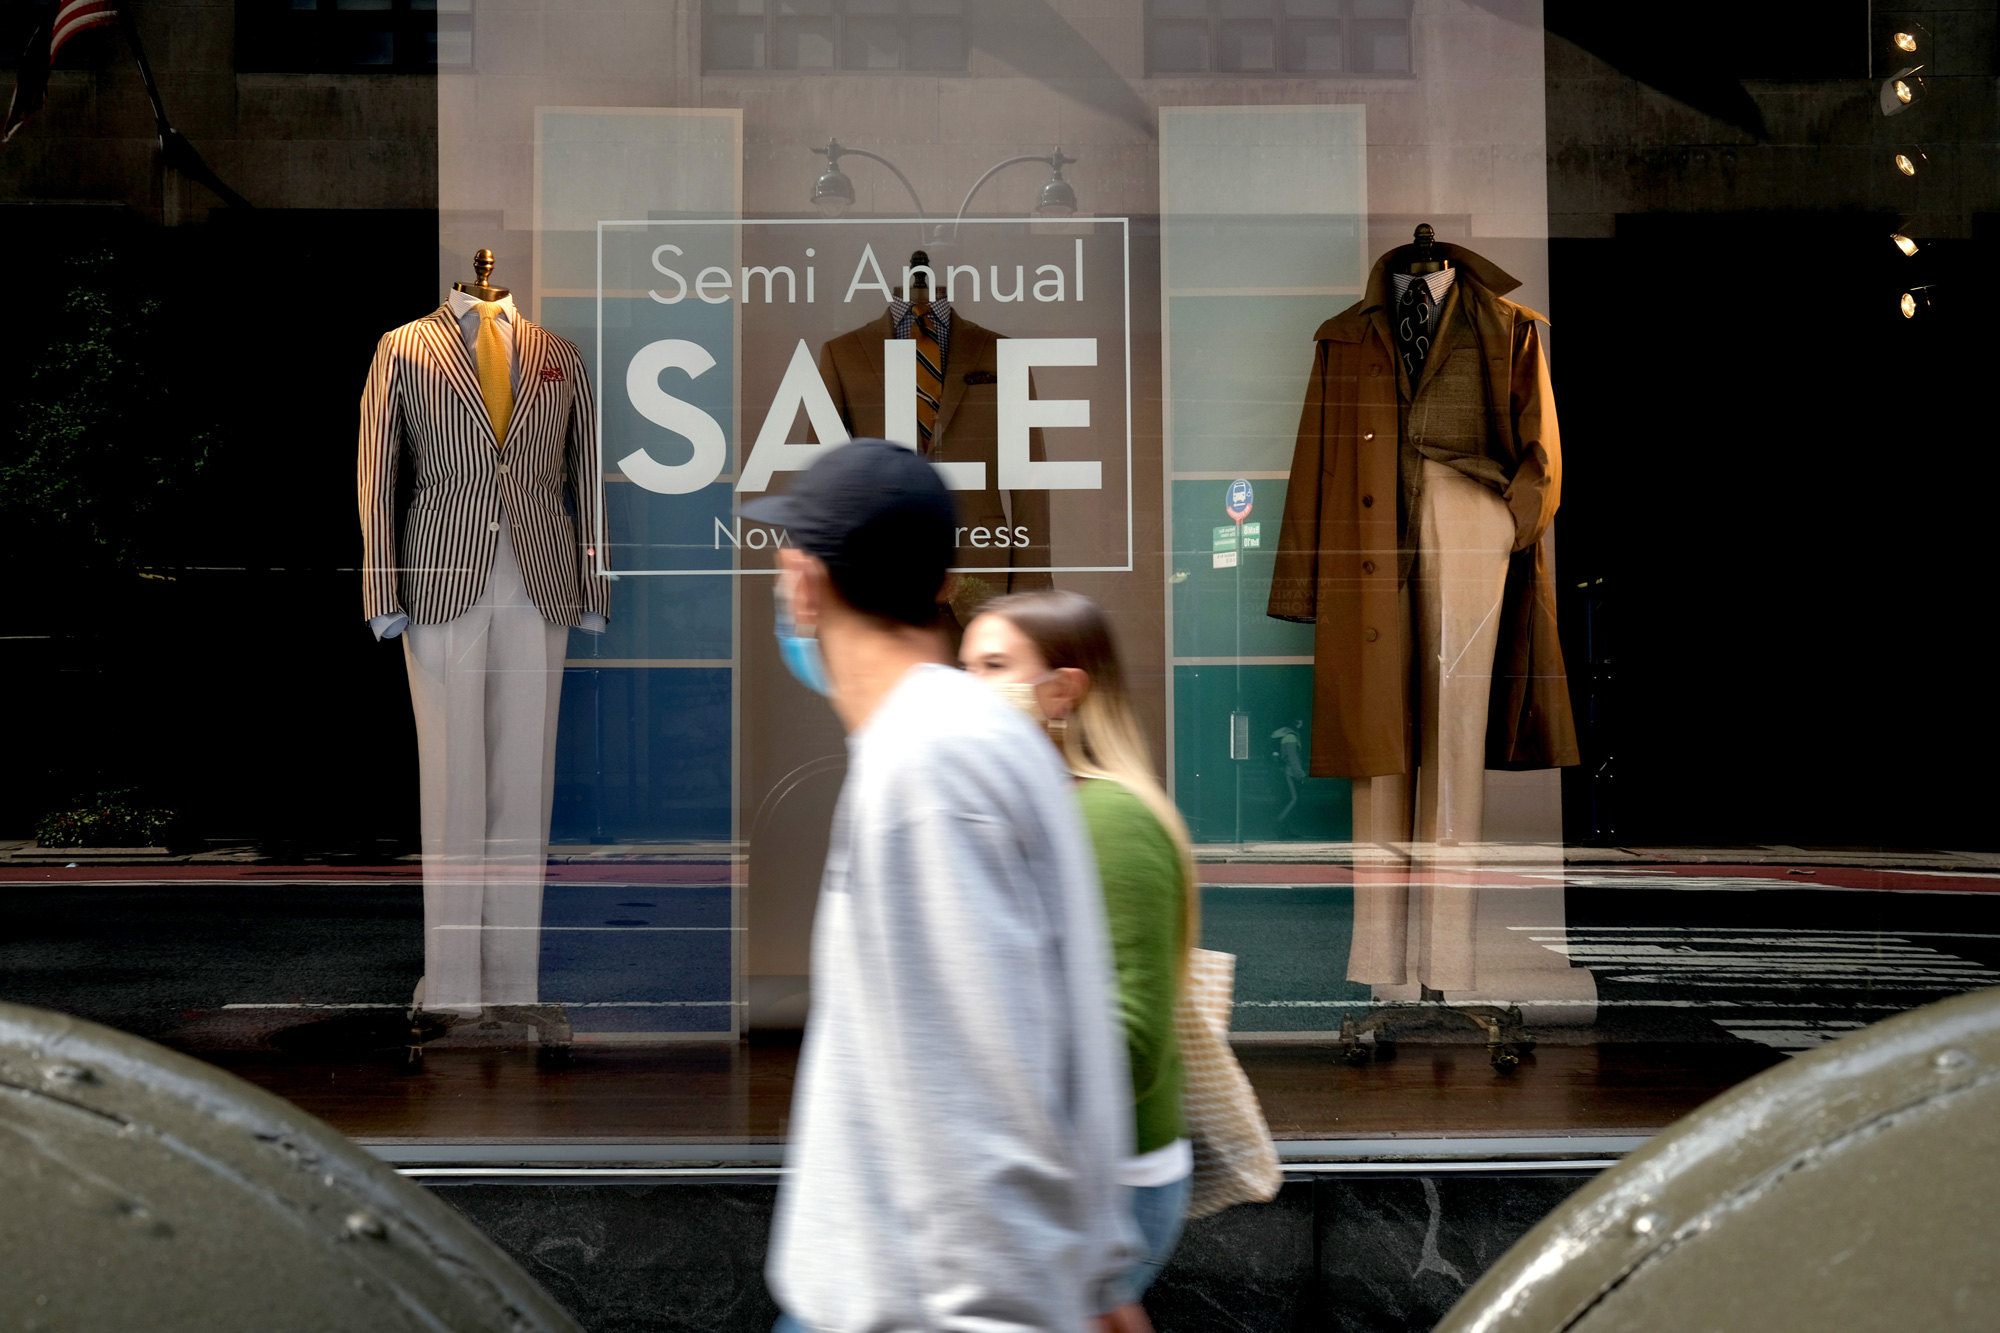 Men's business attire is displayed in the window of a Manhattan clothier on September 15 in New York City.